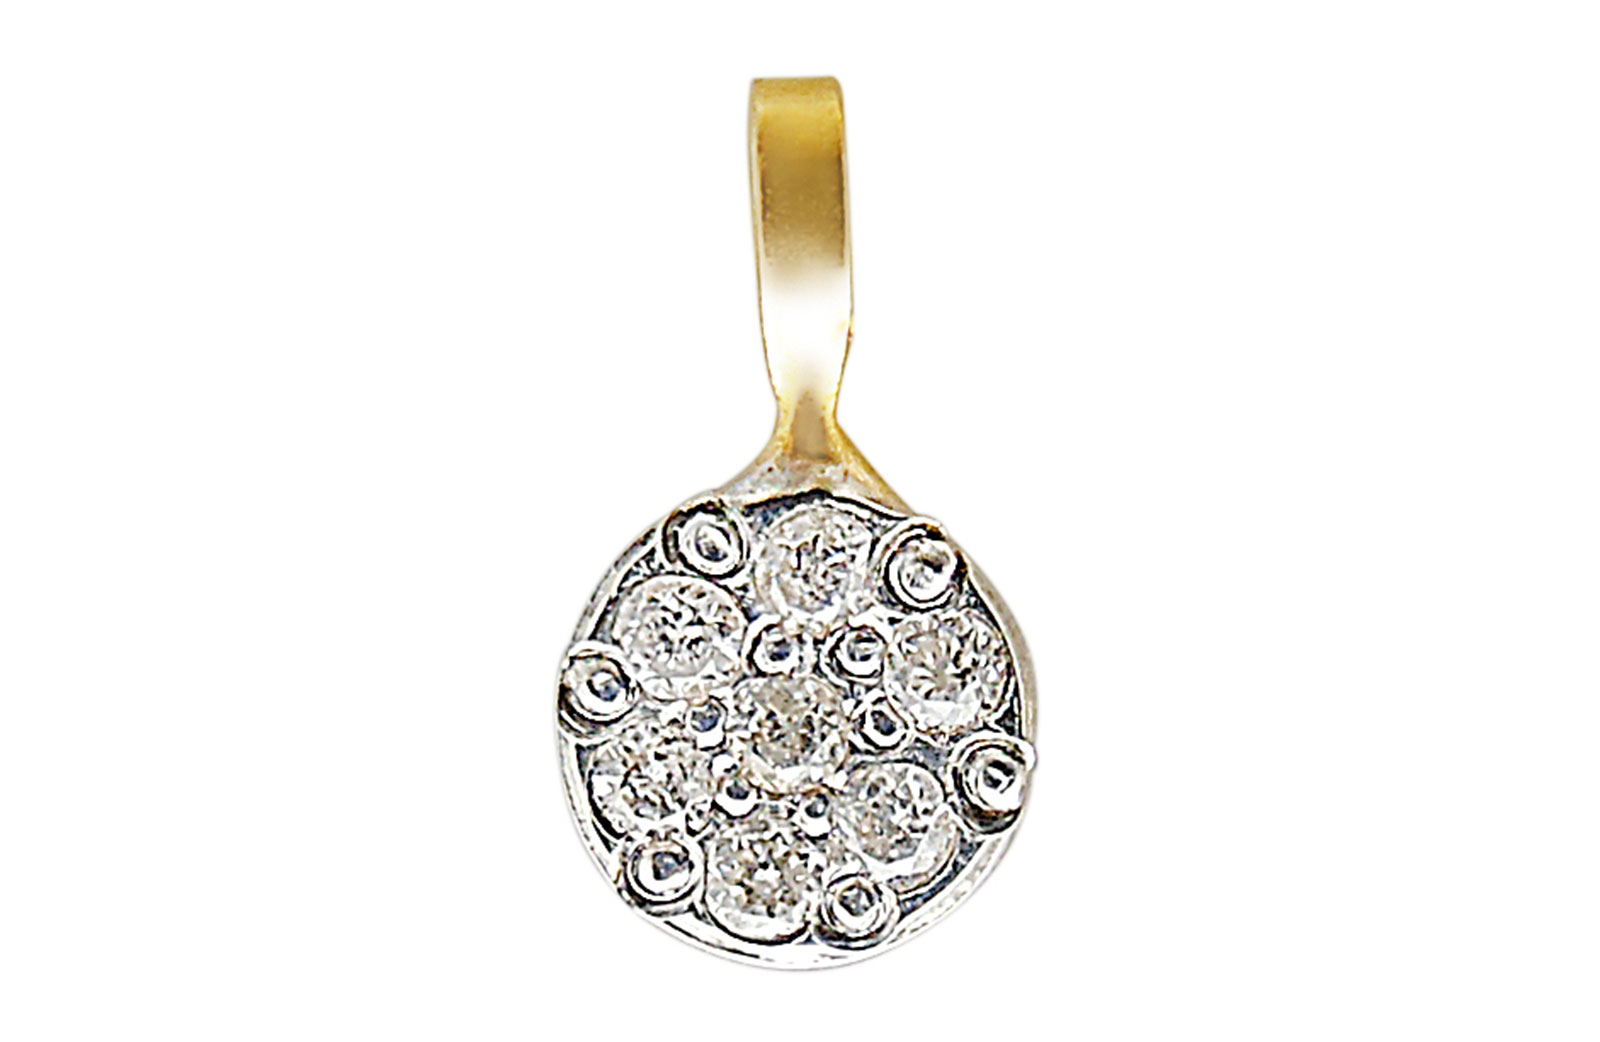 Vera Perla 18K Solid  Gold and Genuine Diamonds  Solitaire Pendant